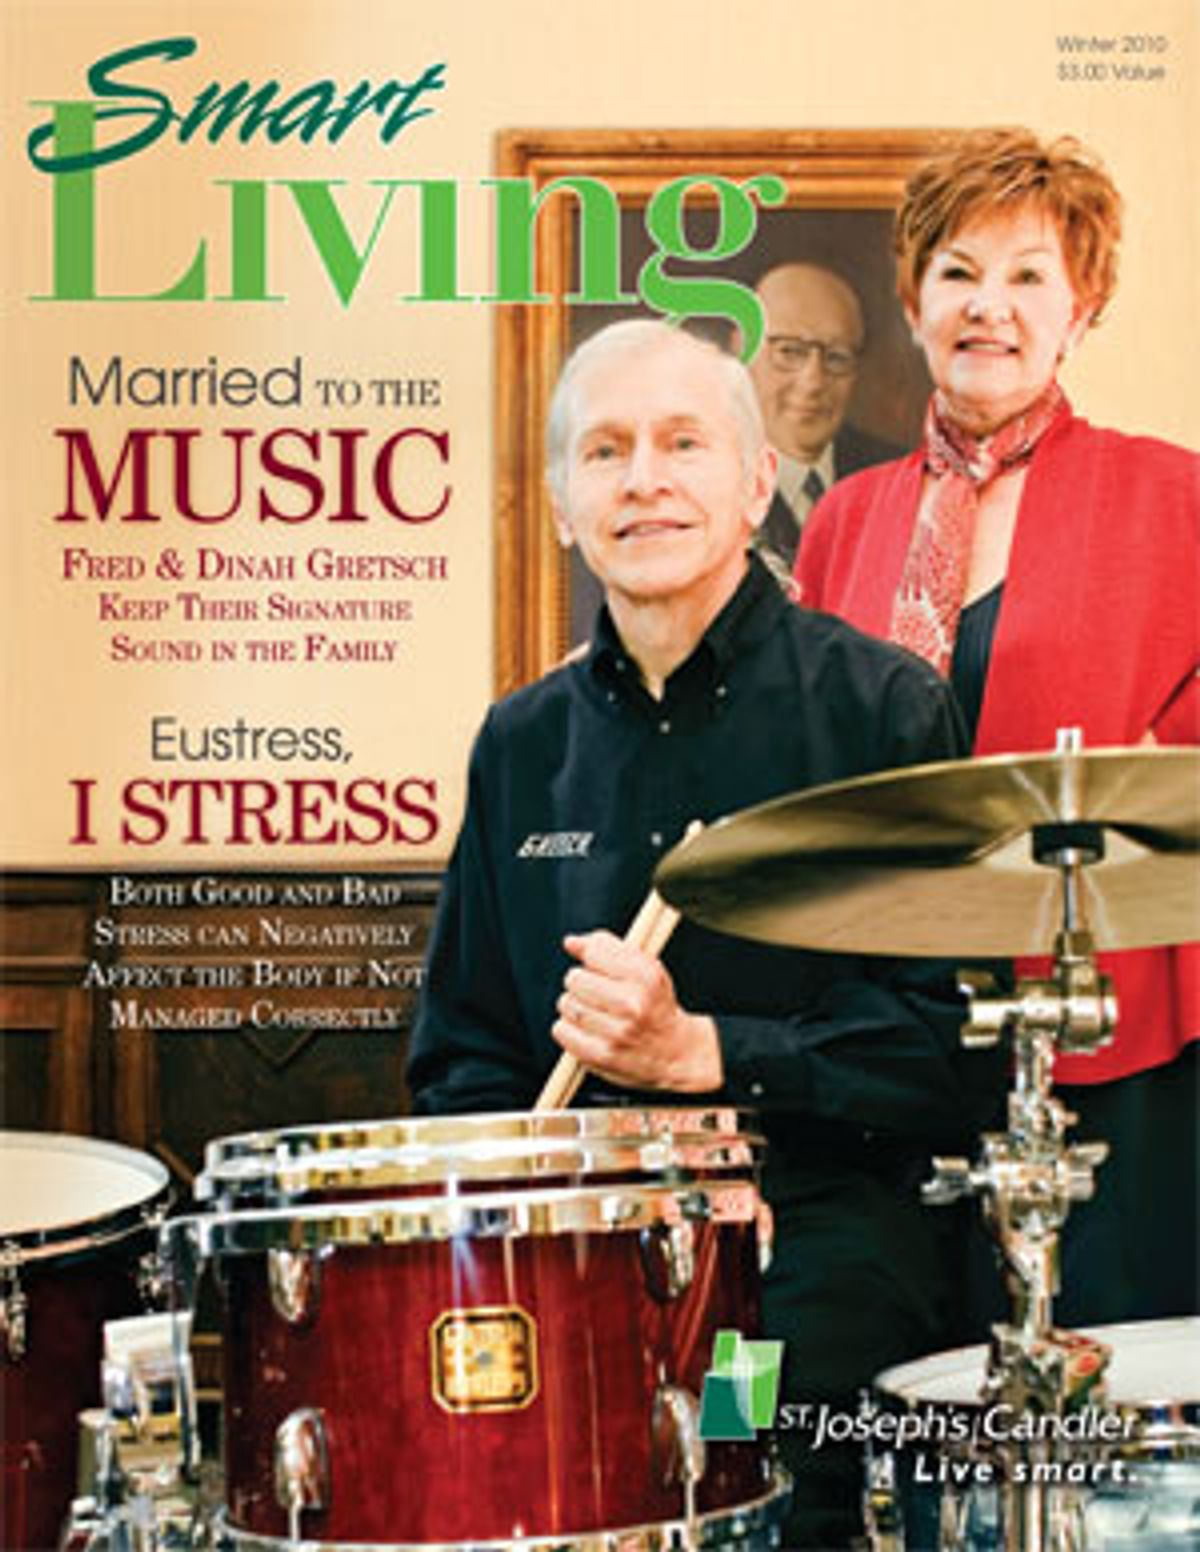 Fred & Dinah Gretsch Recognized in Magazine Cover Story